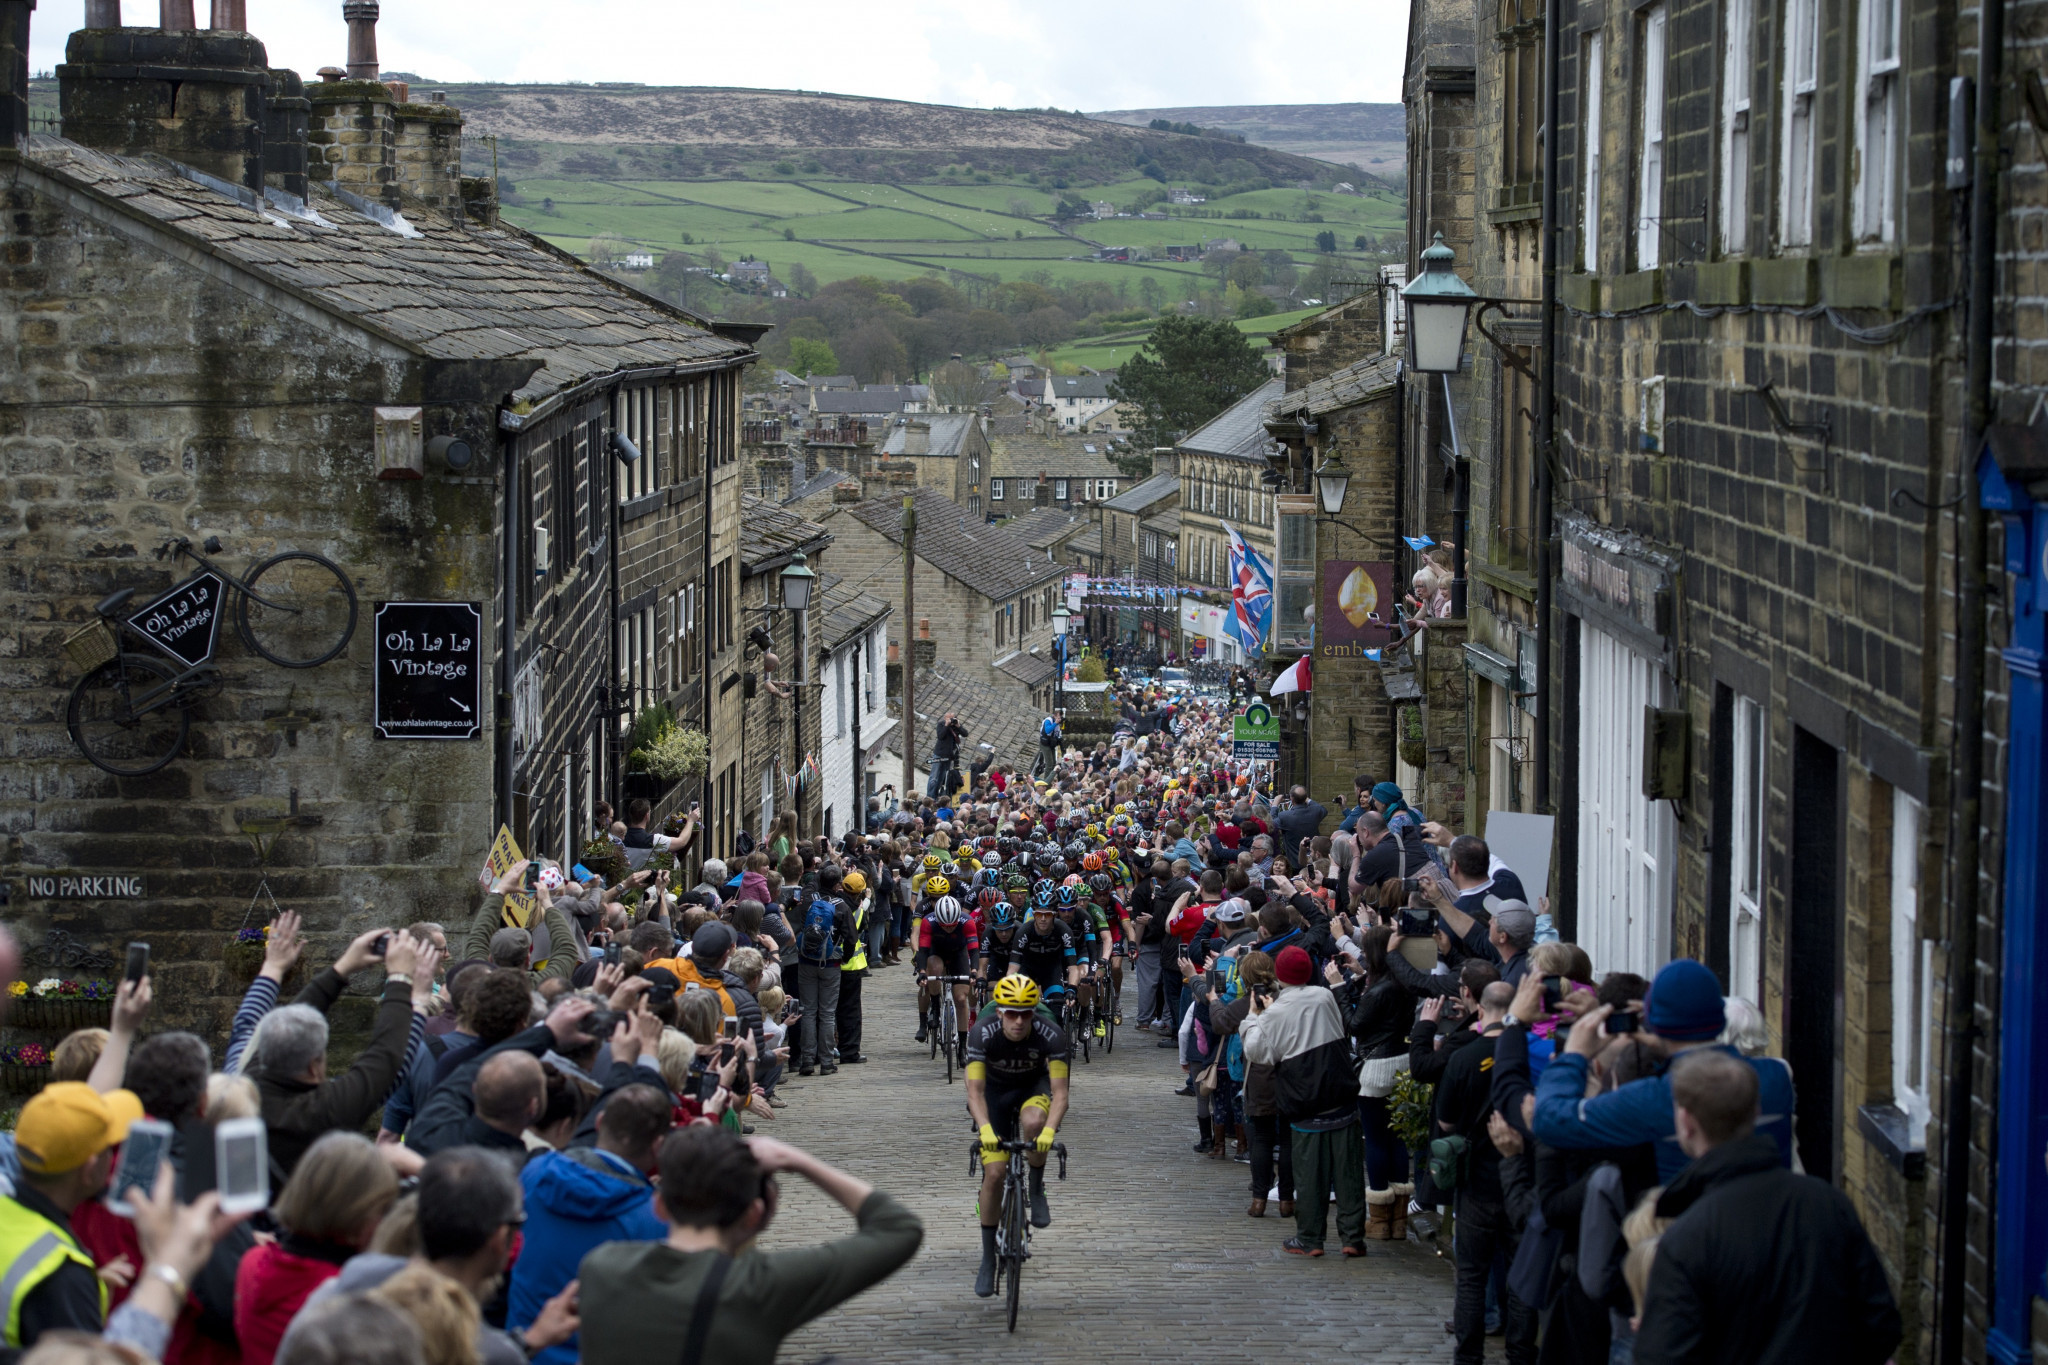 The Tour de Yorkshire was first staged in 2015 but cycling fans will have to wait until 2022 before it takes place again ©Getty Images